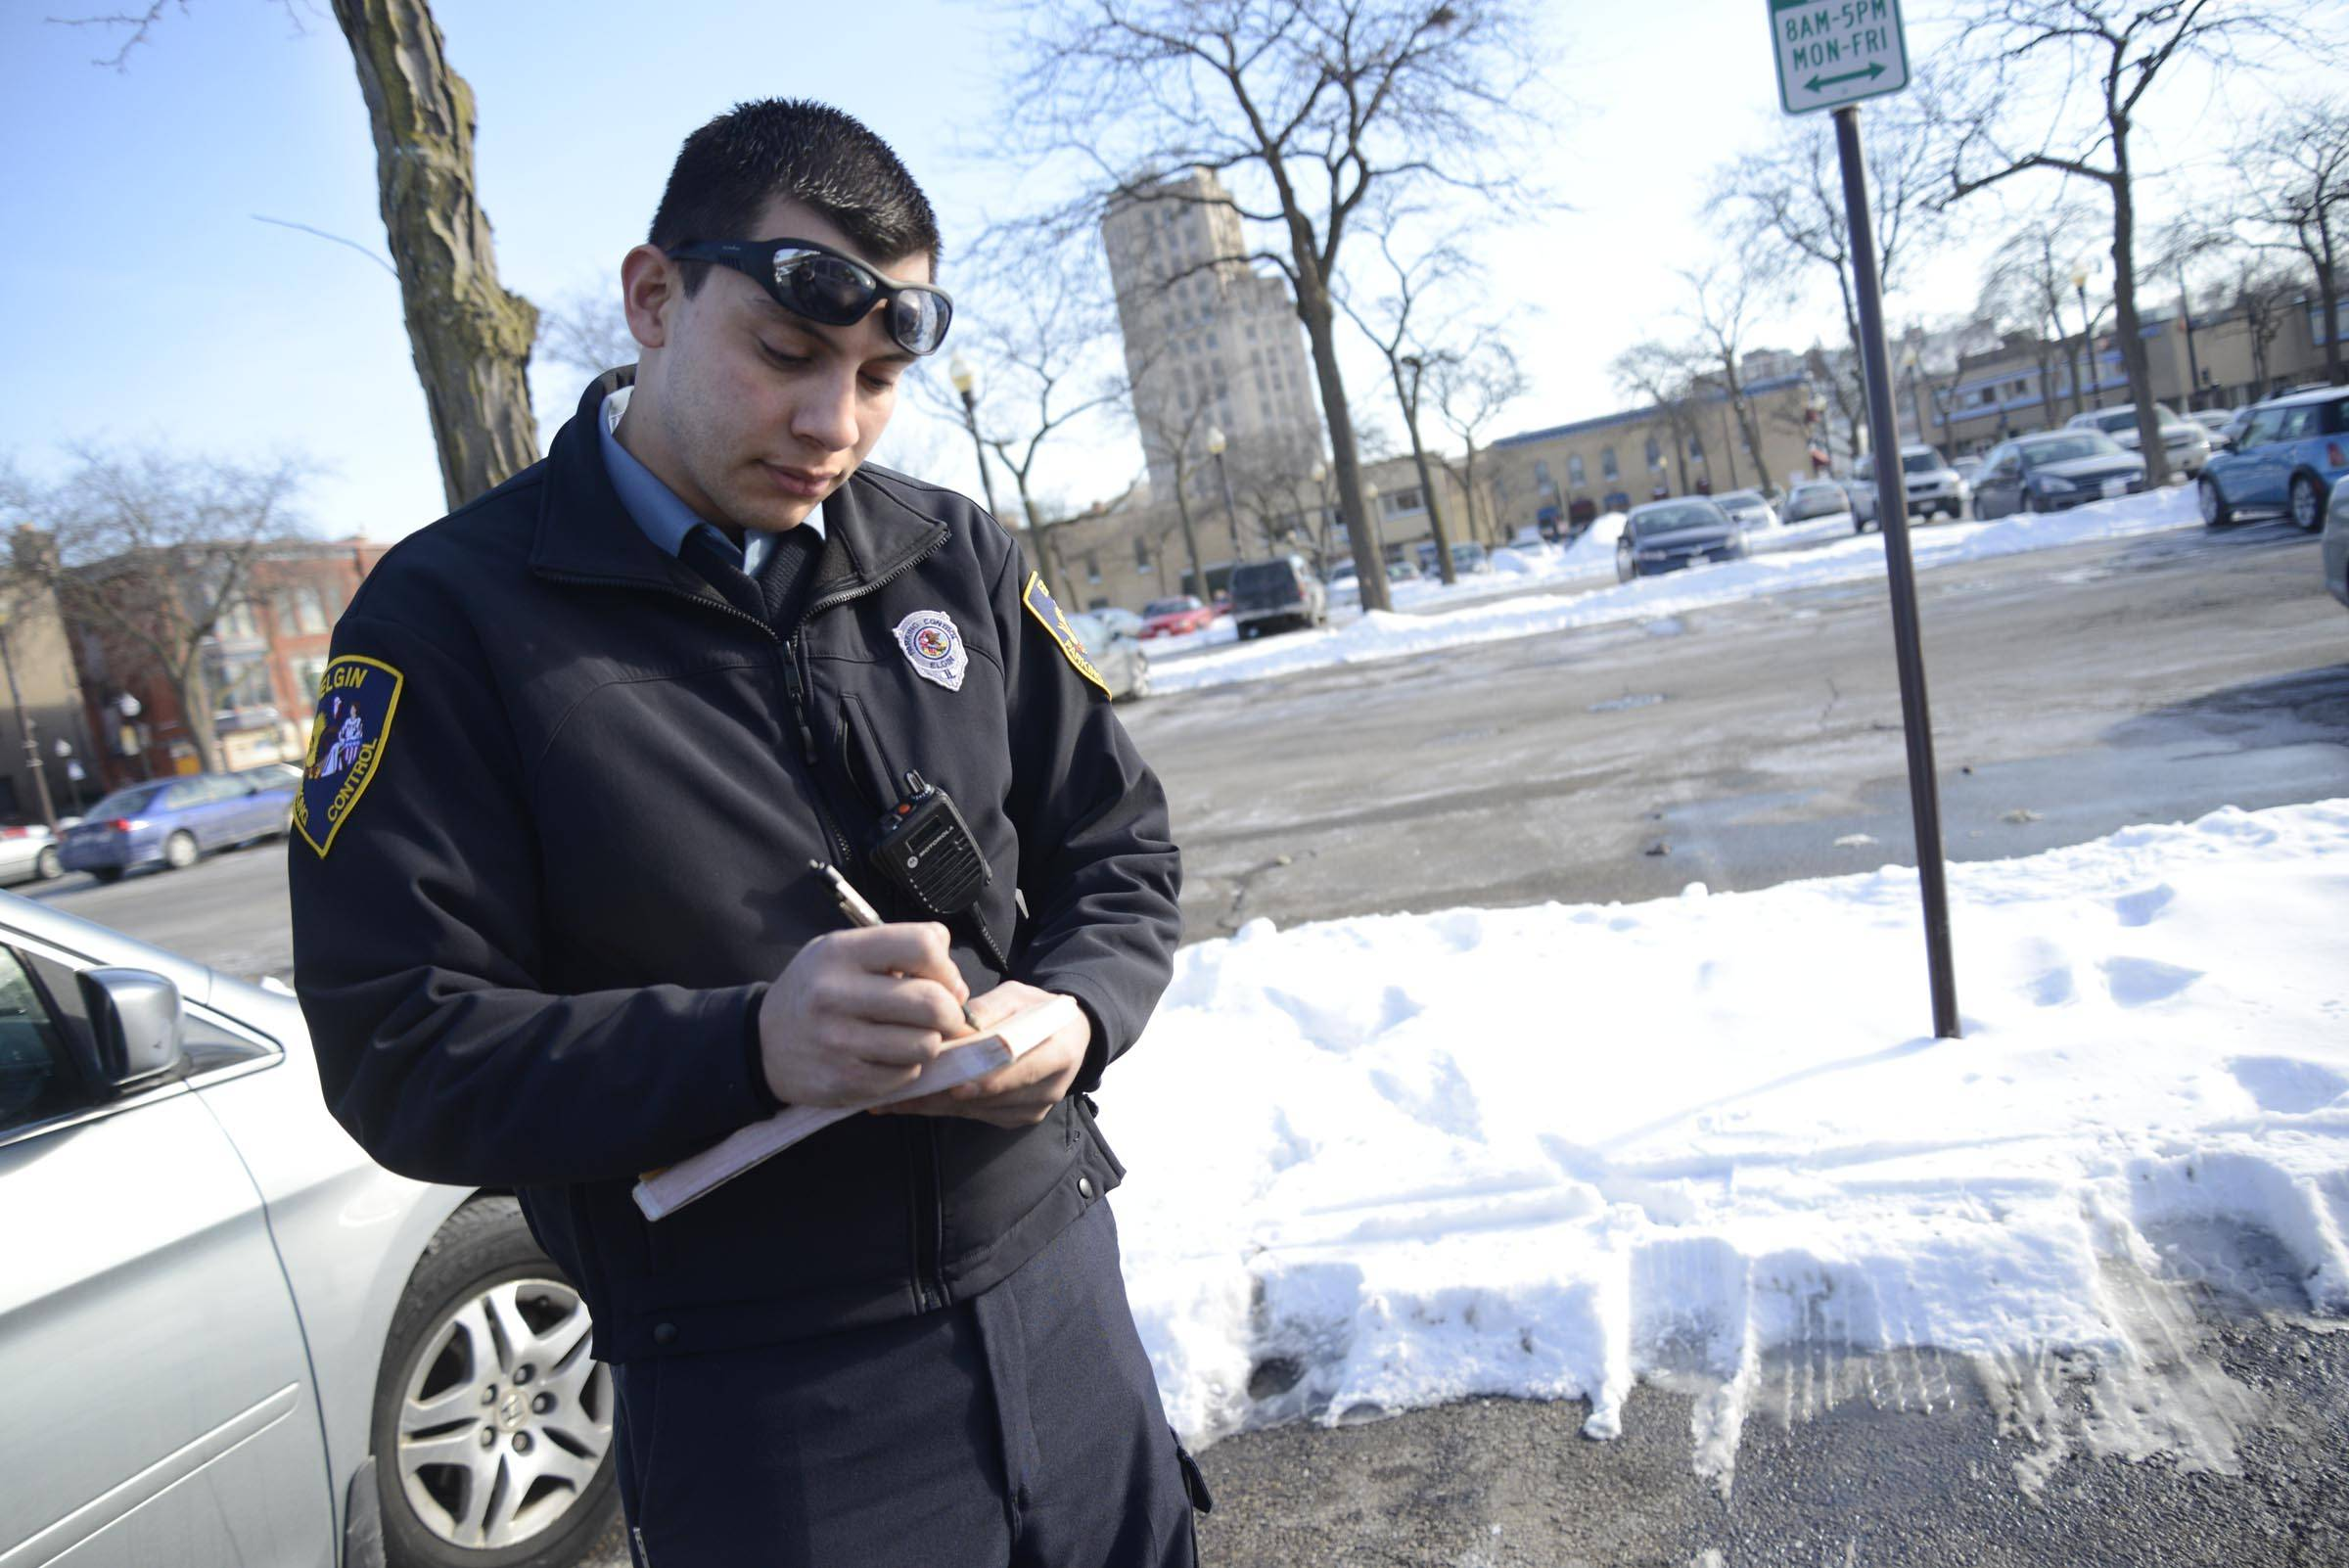 Jose Gutierrez, 20, is a member of the Elgin Police Explorer program and works part-time as a parking control officer. He wants to become a police officer, but current rules say he can't qualify for hiring until he has a bachelor's degree.